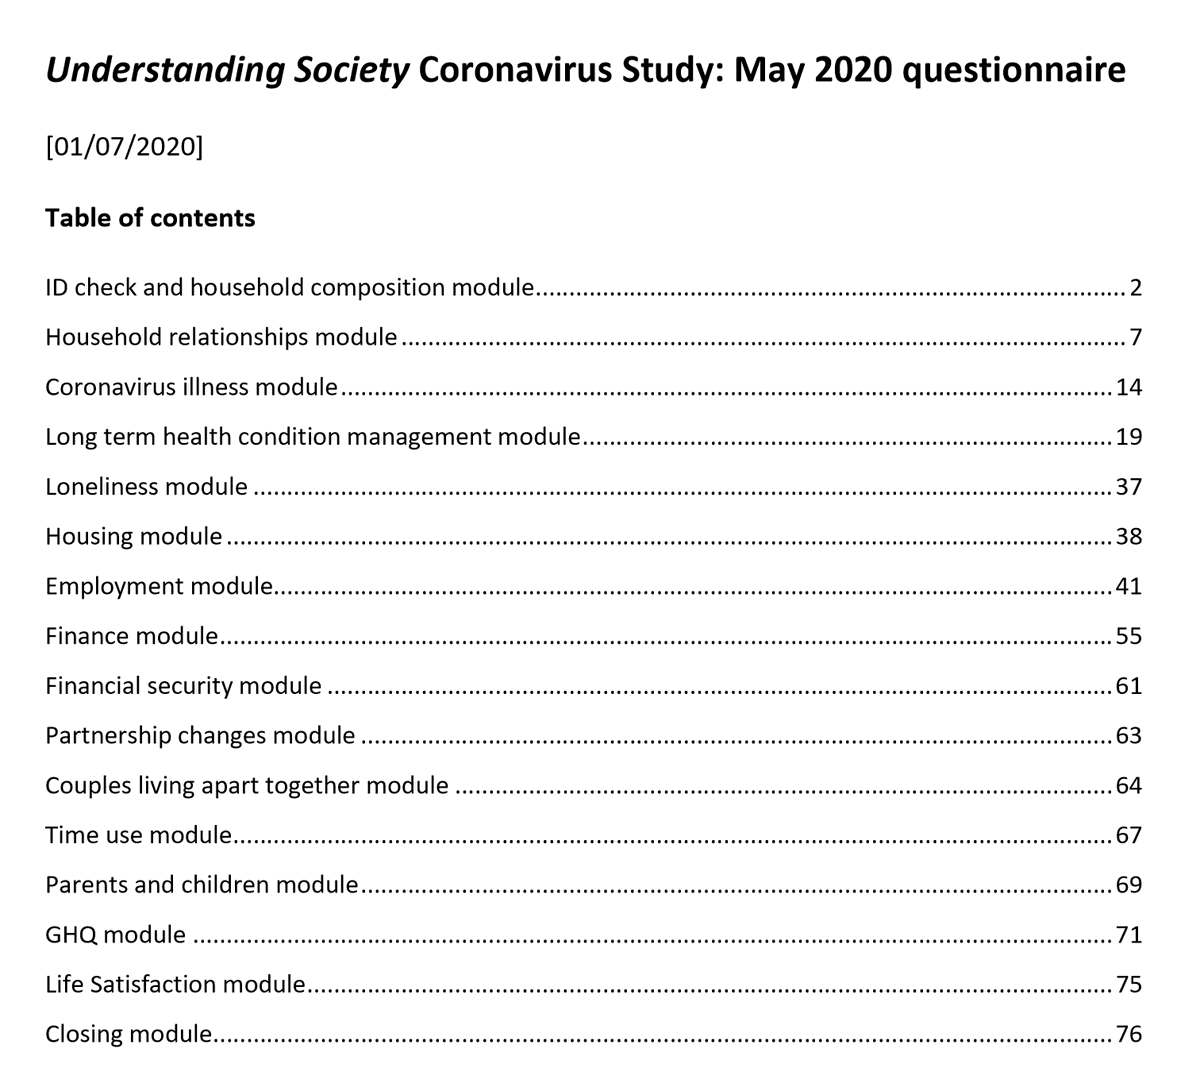 Wave 2 data from the Understanding Society Covid-19 Study are now available - collected late-May/early-June @usociety  https://beta.ukdataservice.ac.uk/datacatalogue/studies/study?id=8644 … https://www.understandingsociety.ac.uk/research/themes/covid-19 …pic.twitter.com/yPUyDvxiu1